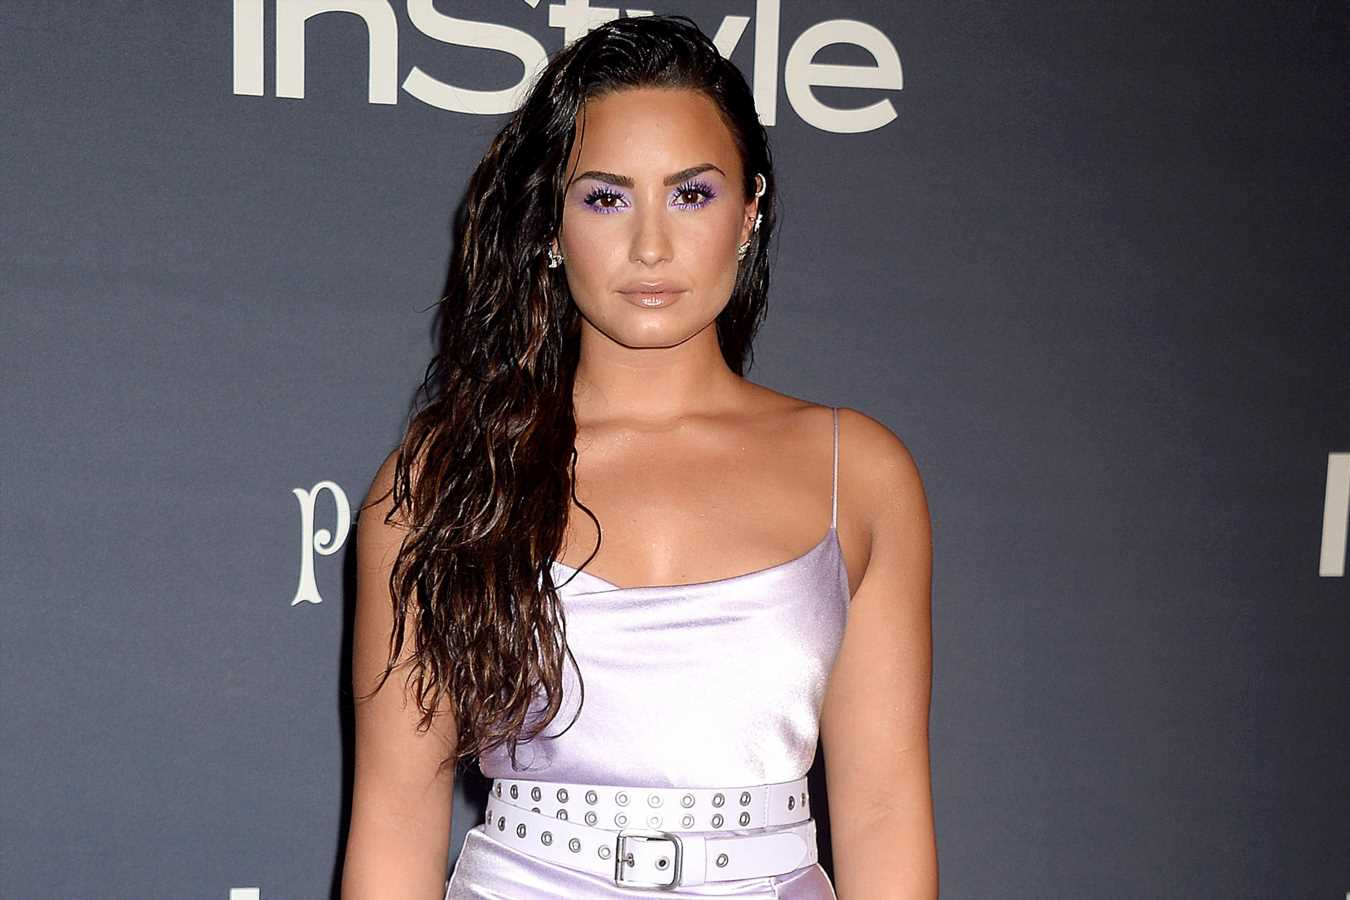 Demi Lovato is 'Very Focused on Staying Healthy' as She Works on Upcoming Album, Says Source